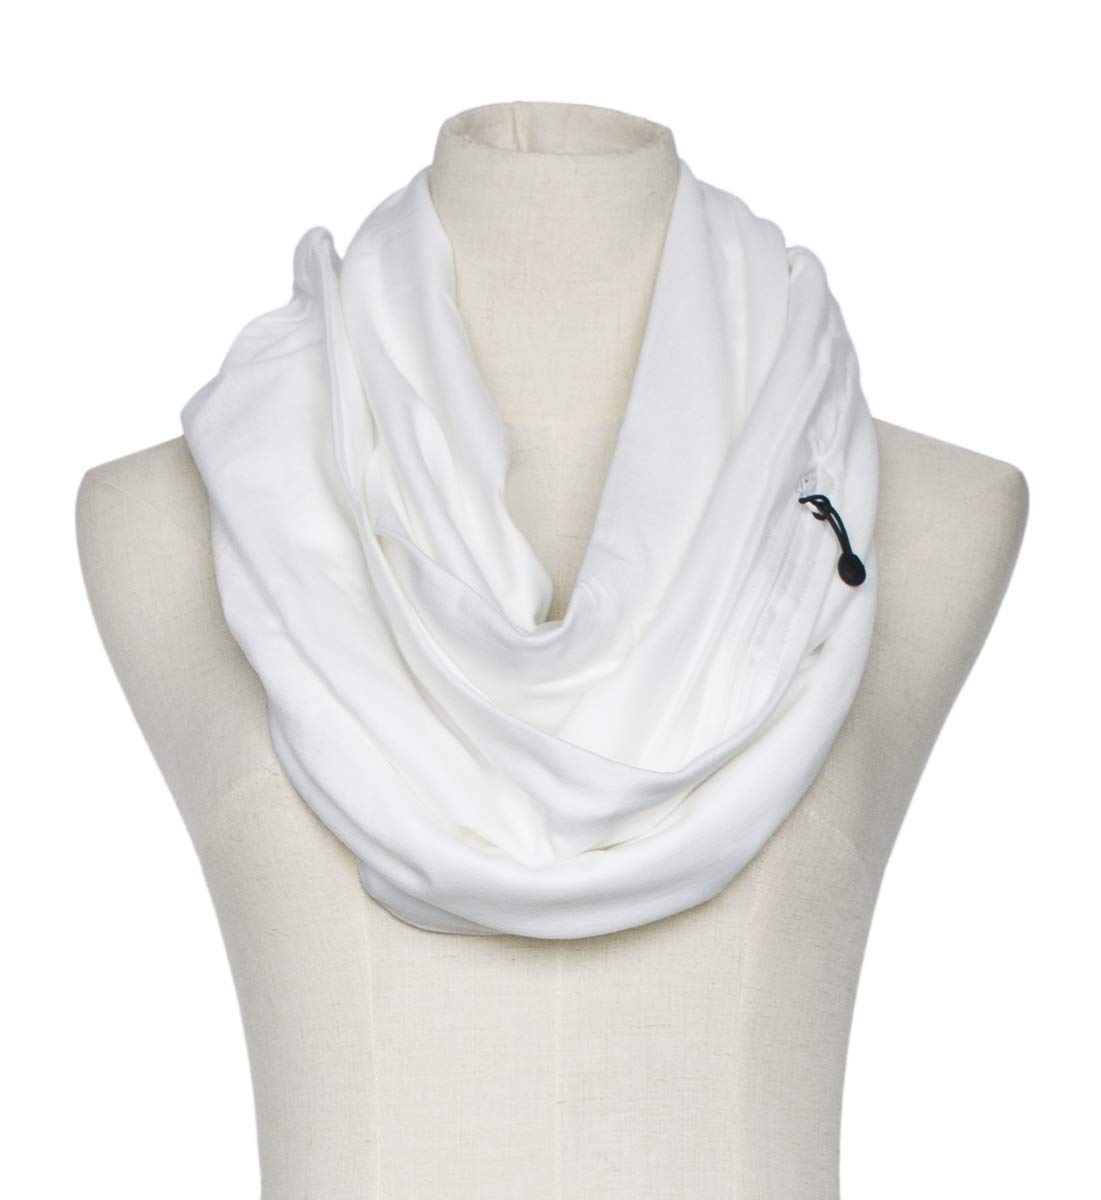 Women's Solid Infinity Travel Scarf With Secret Zipper Pockets (Grey) BGWBKD72GY